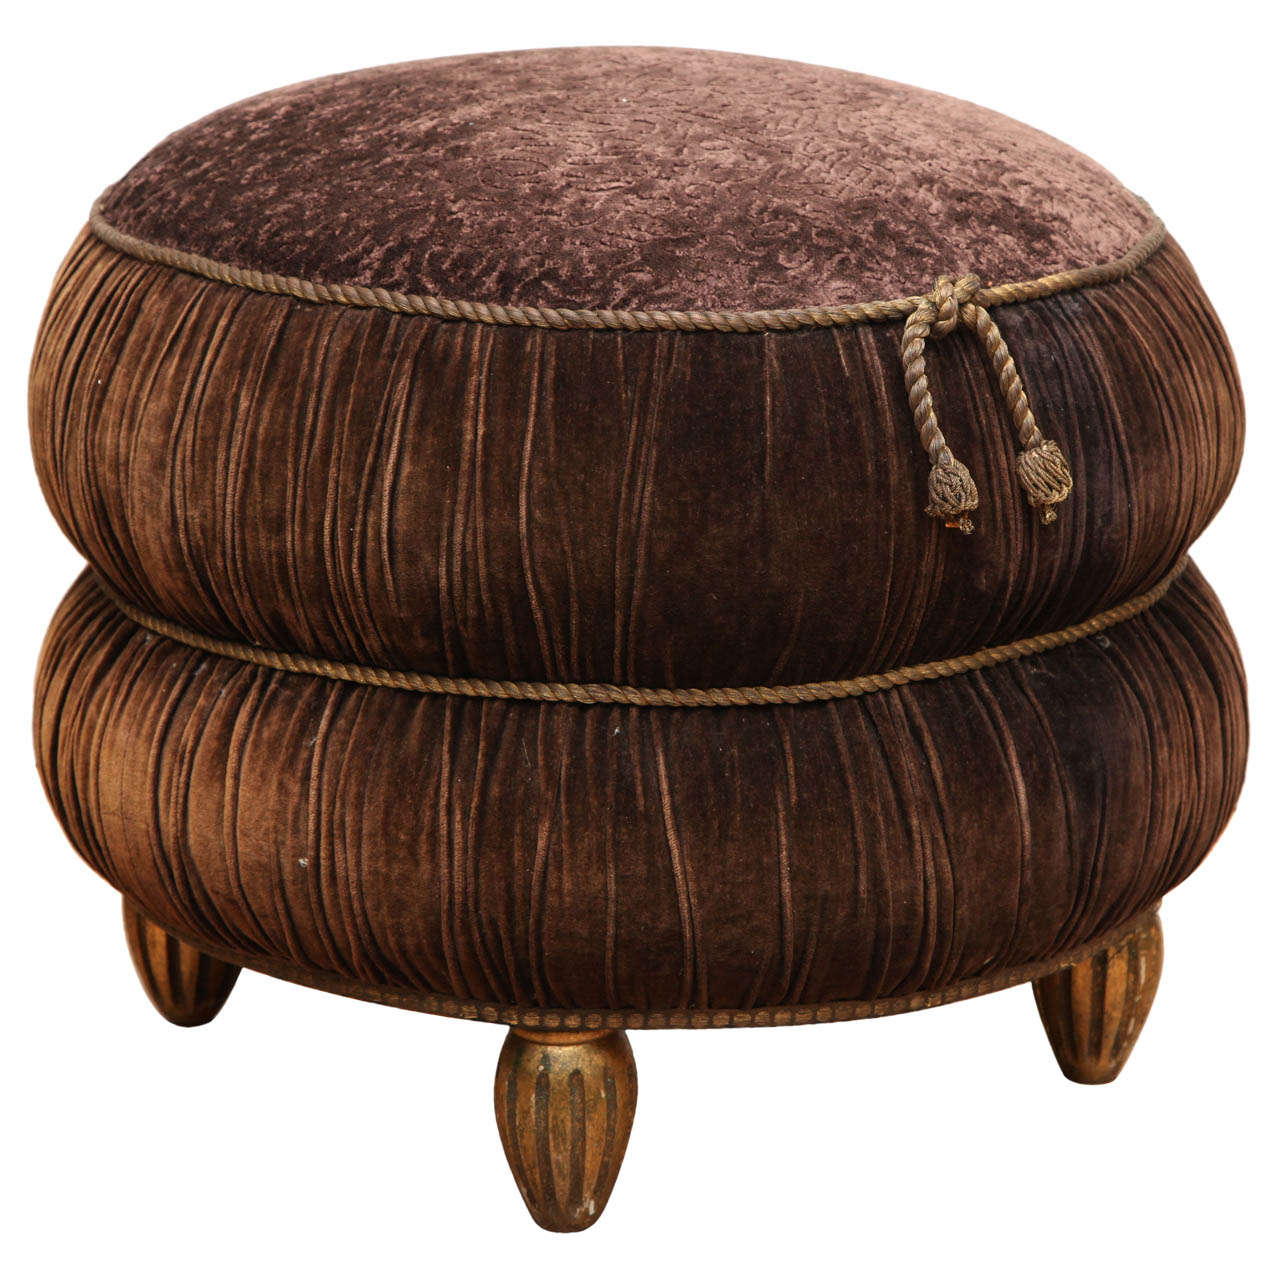 elegant art deco pouf at 1stdibs. Black Bedroom Furniture Sets. Home Design Ideas